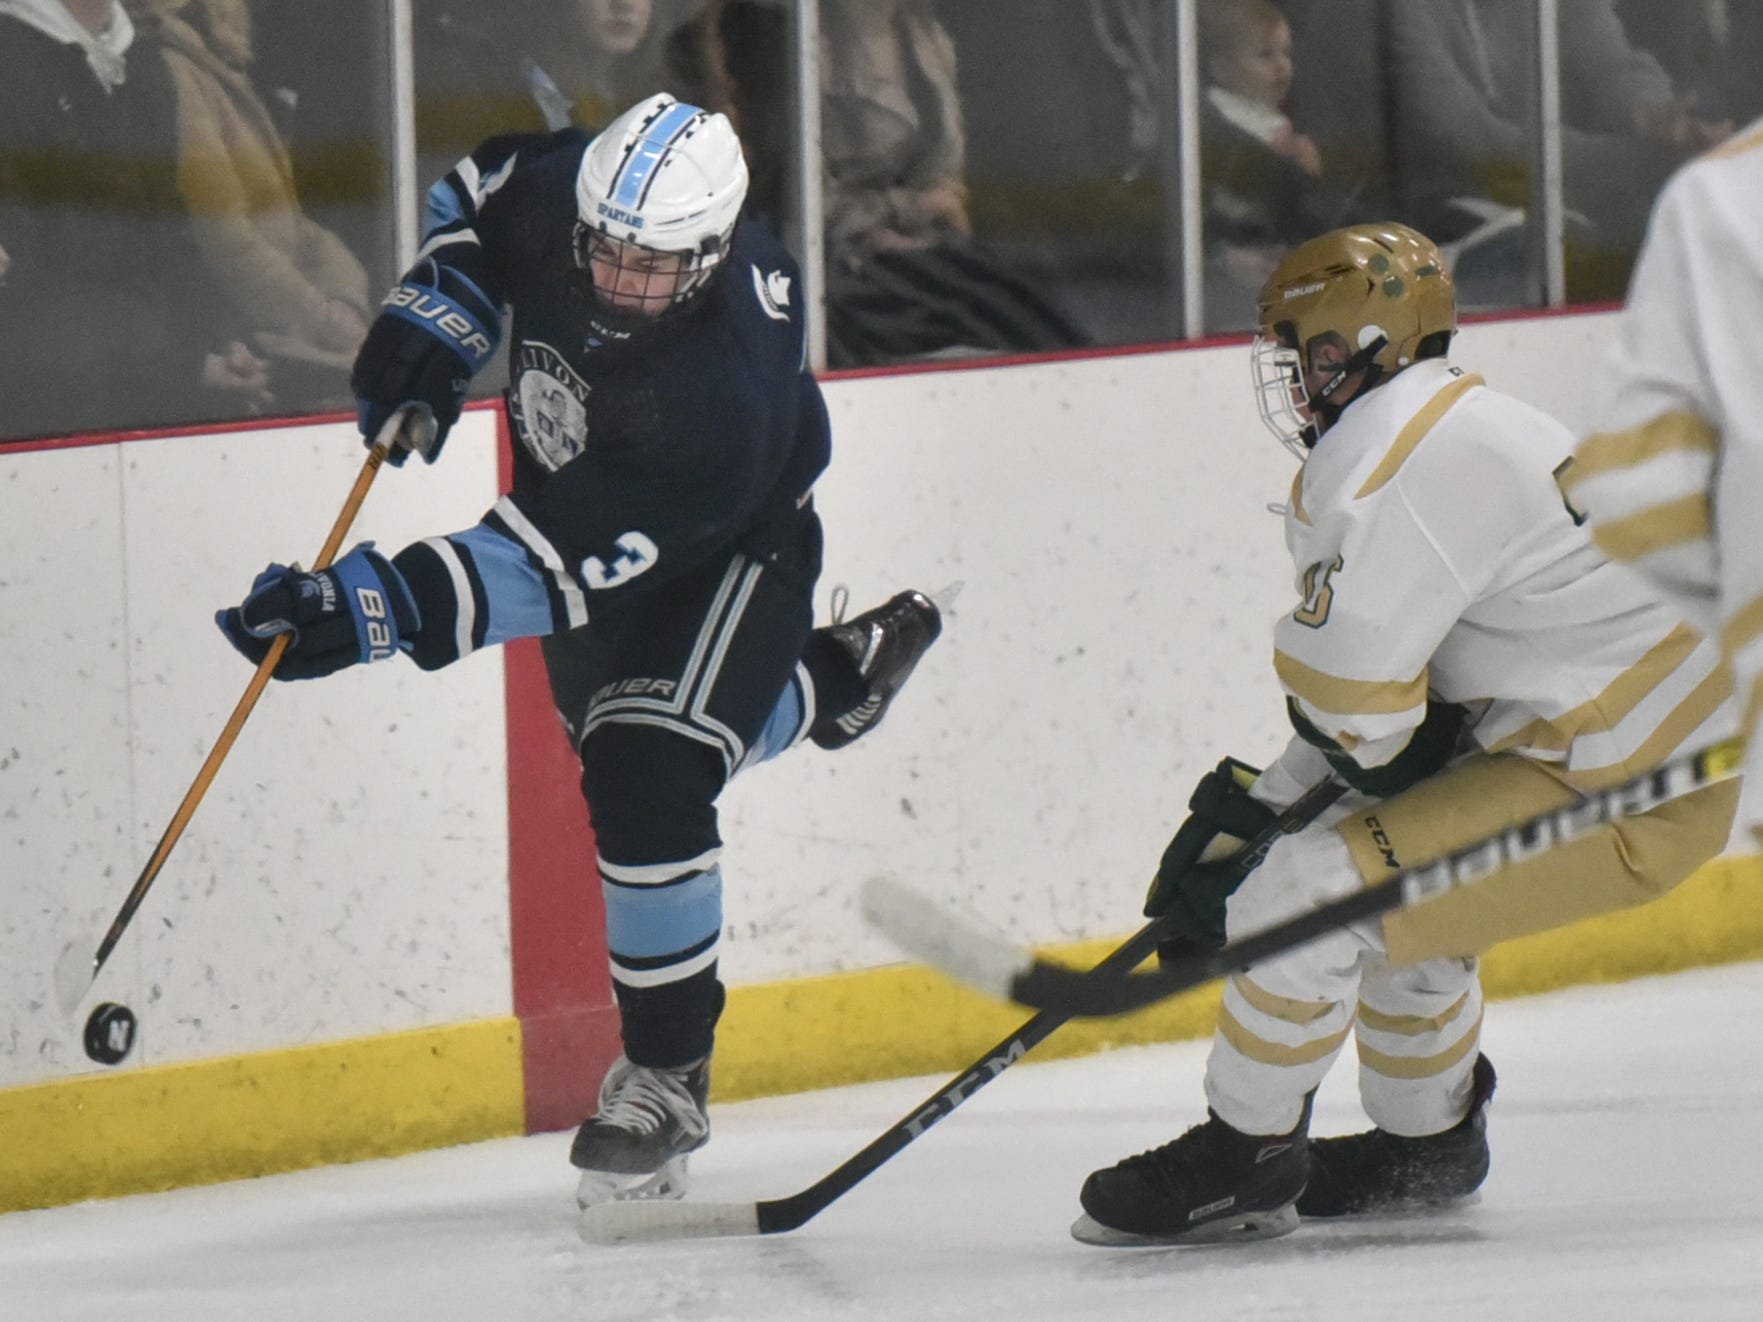 While balancing on a single skate Spartan Joe Sharkey tries to get ahold of a puck.